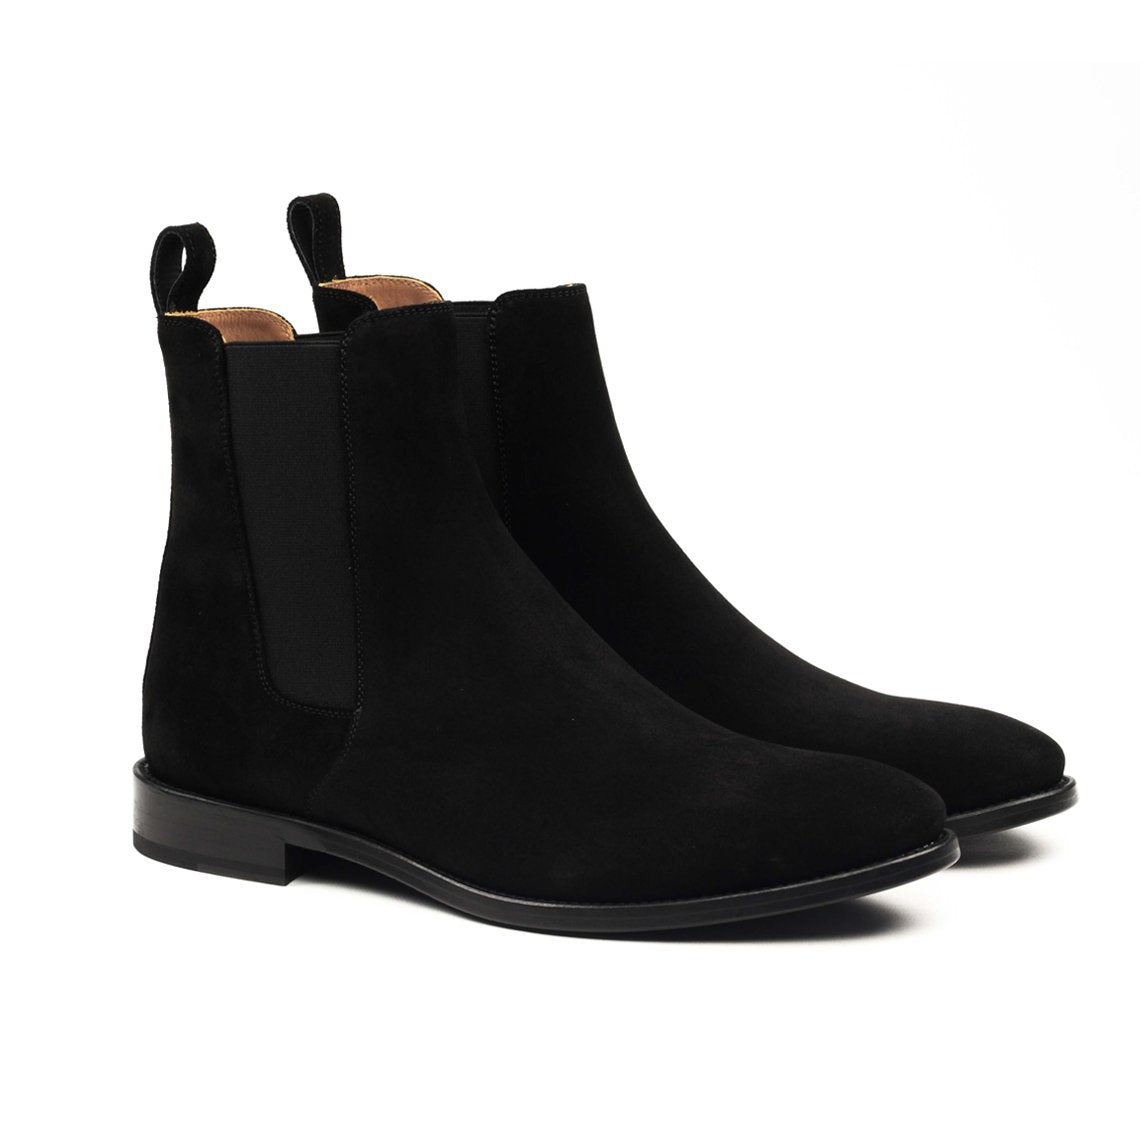 569d24951981a5 THE CLASSIC BLACK CHELSEA BOOTS THE CLASSIC BLACK CHELSEA BOOTS ...